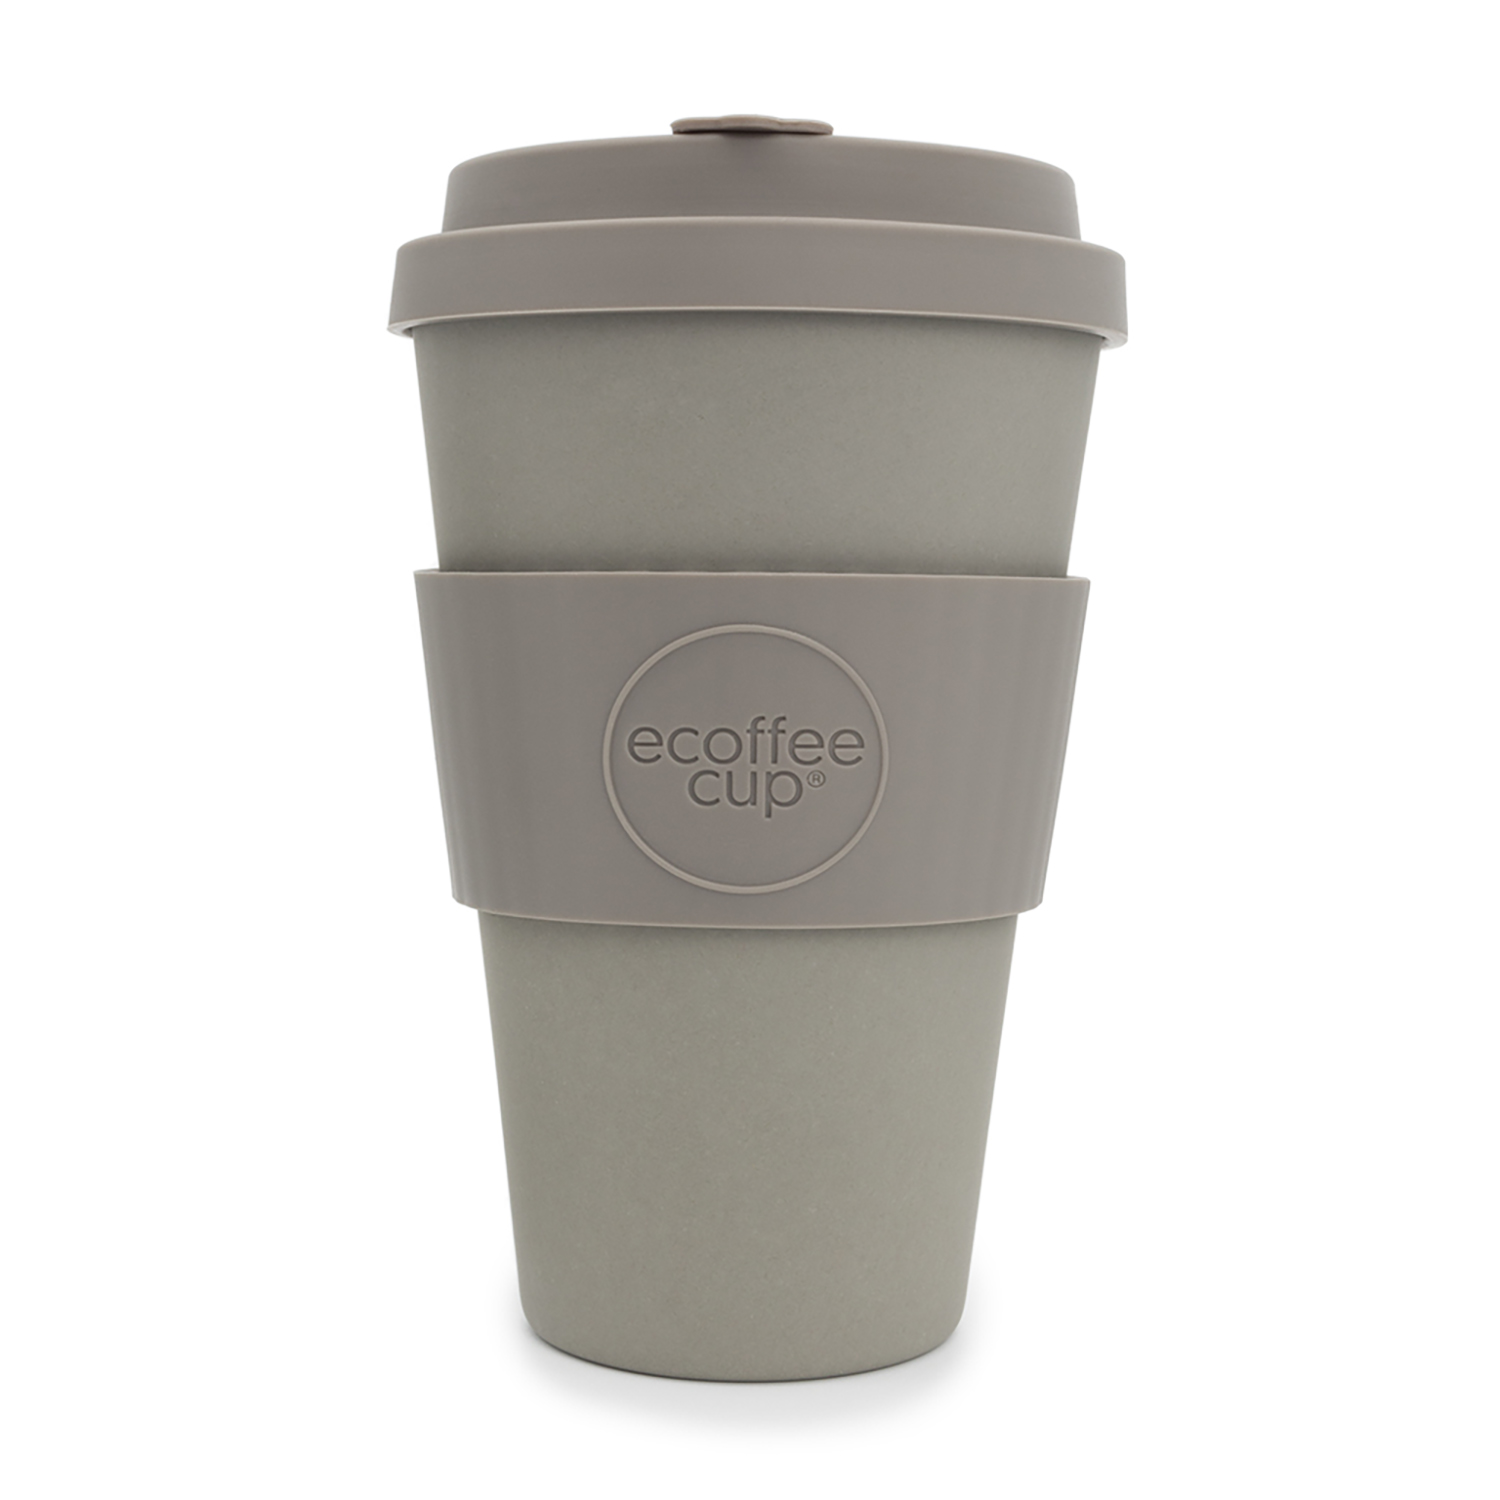 Domestic disposable cups or glasses or lids Ecoffee Eco 14oz Molto Grigio Cup Ref 0303030